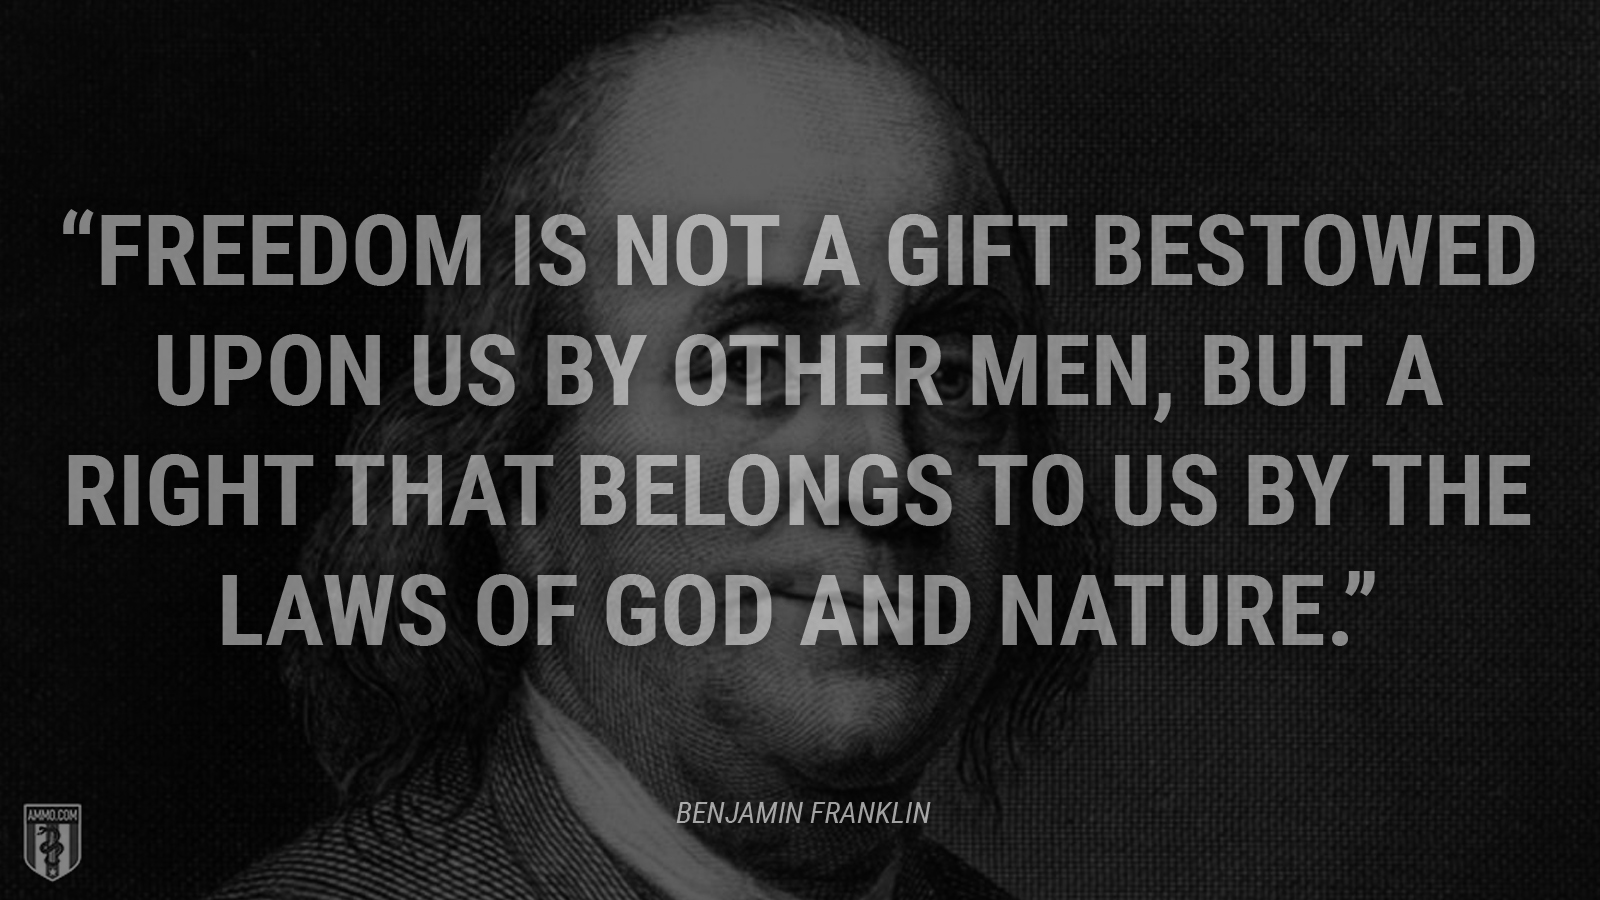 """Freedom is not a gift bestowed upon us by other men, but a right that belongs to us by the laws of God and nature."" - Benjamin Franklin"